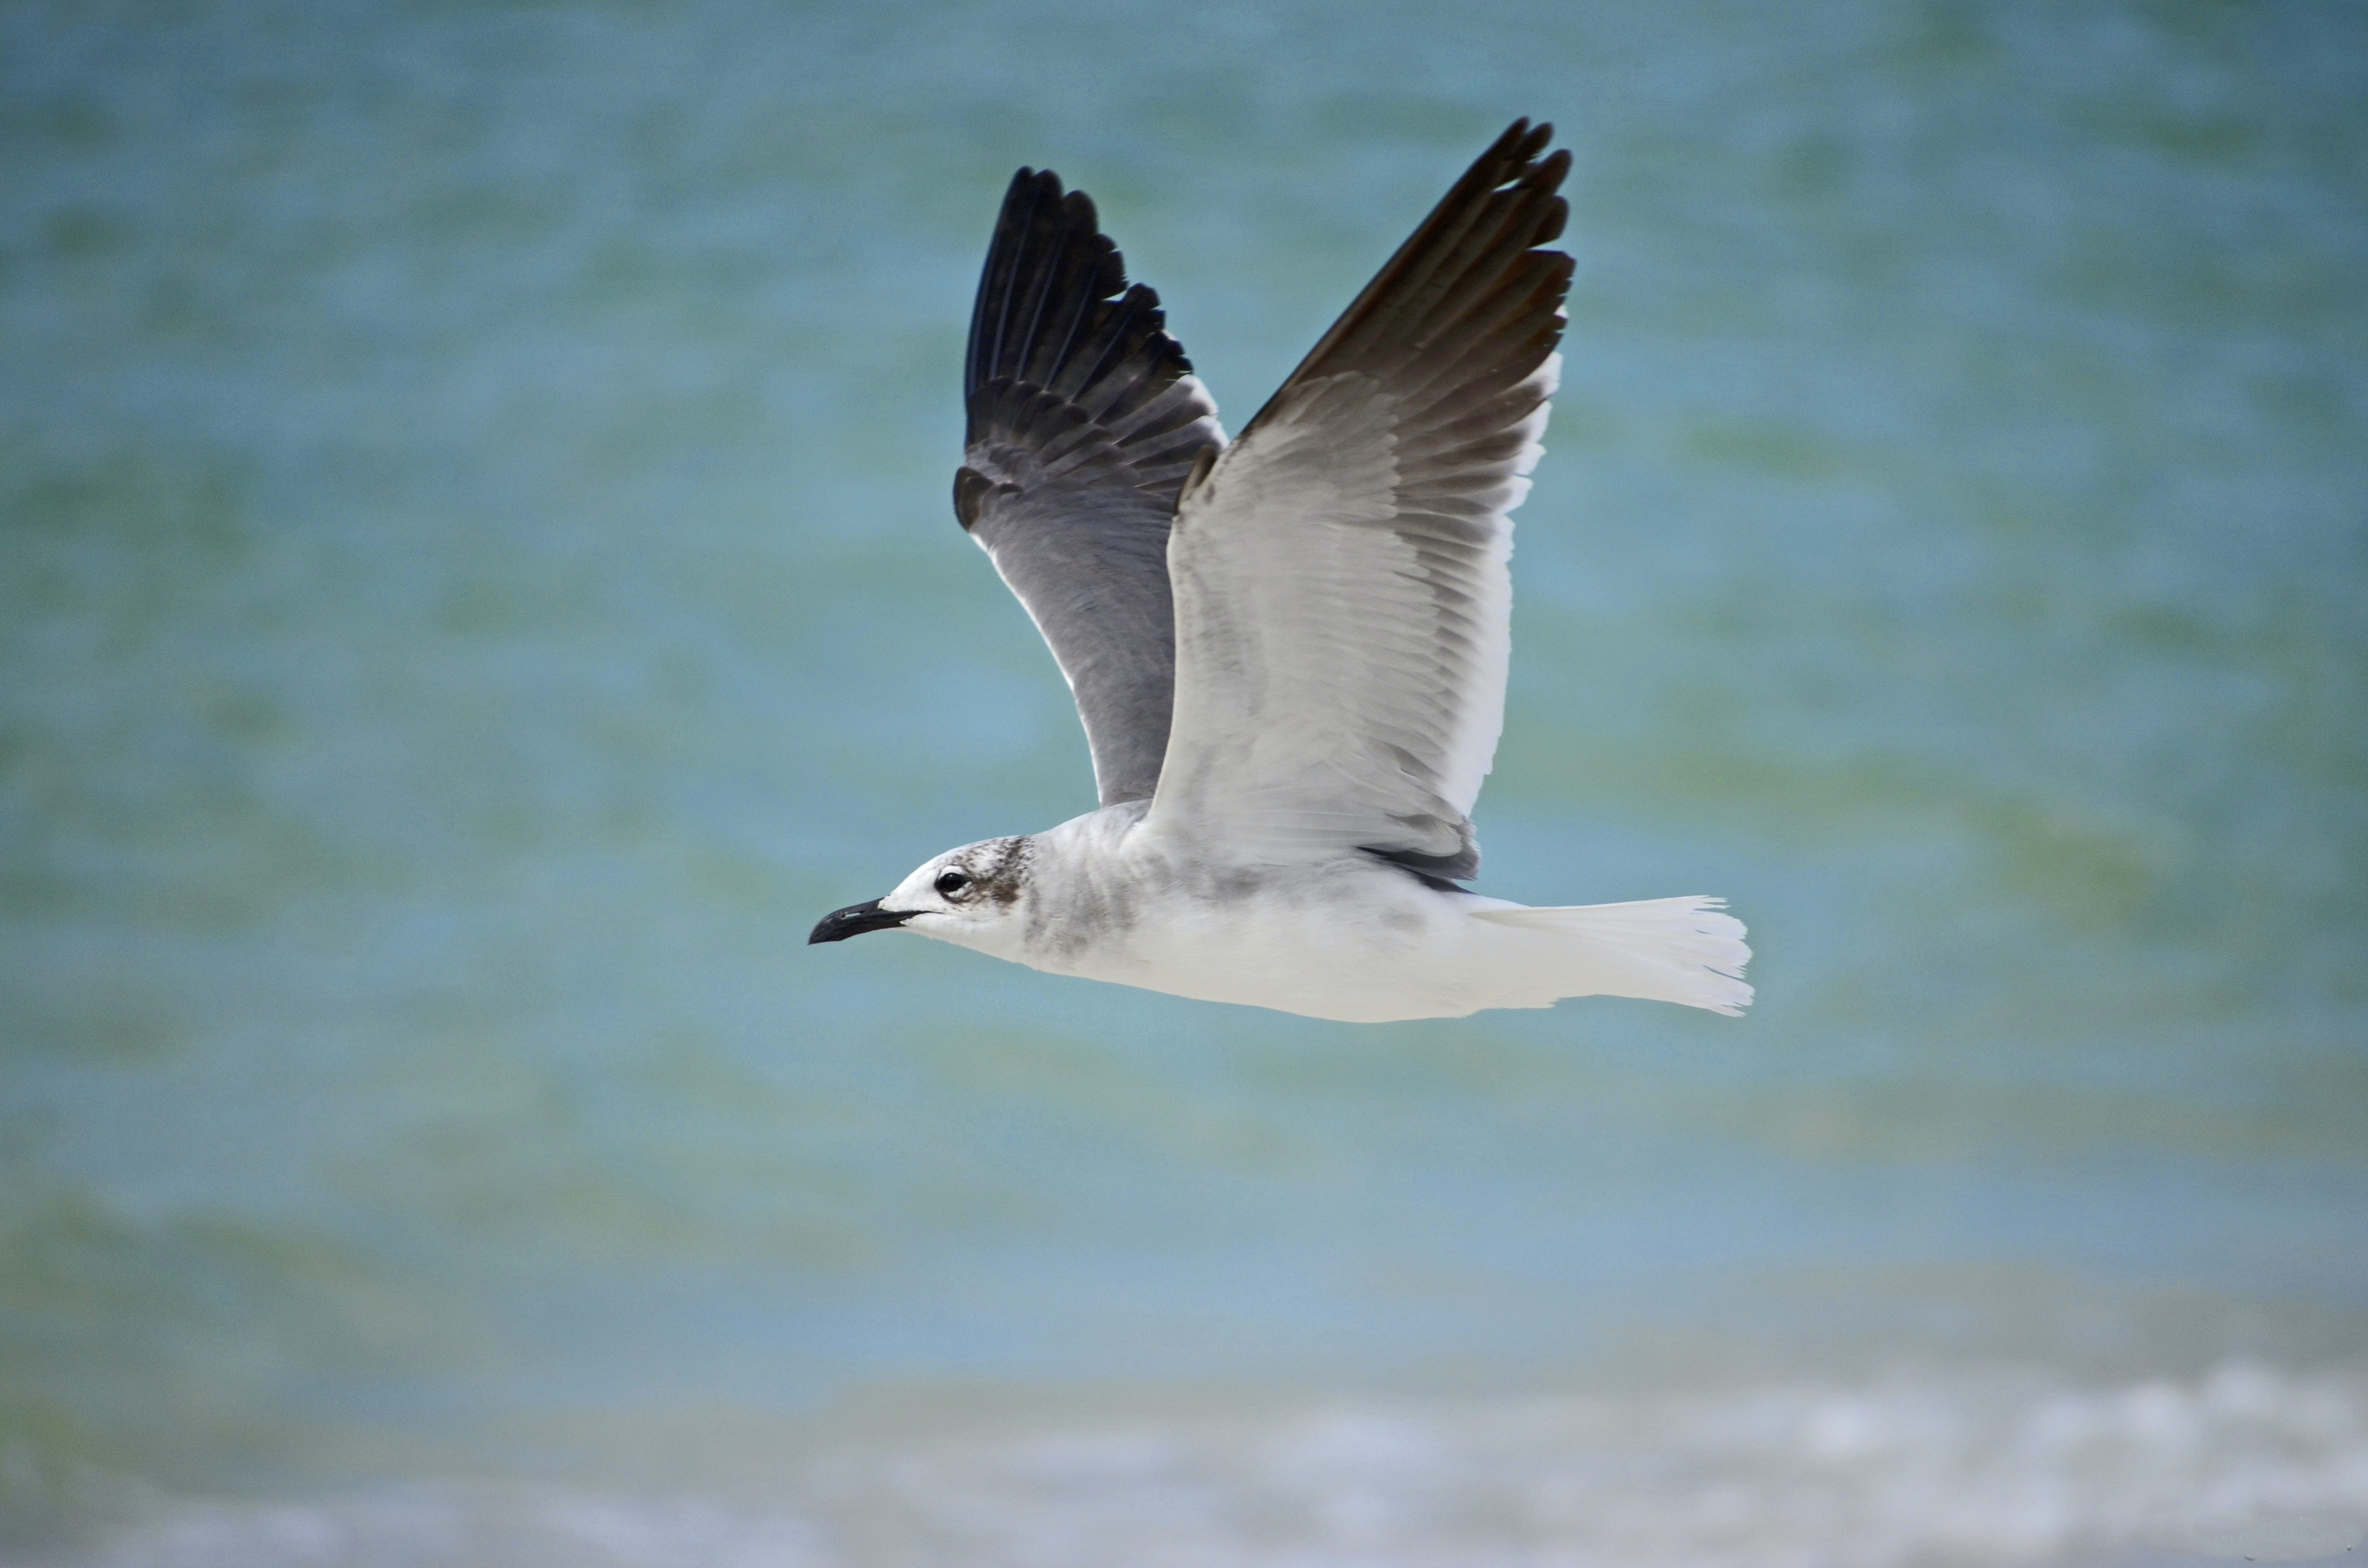 white seagull flying over a body of water